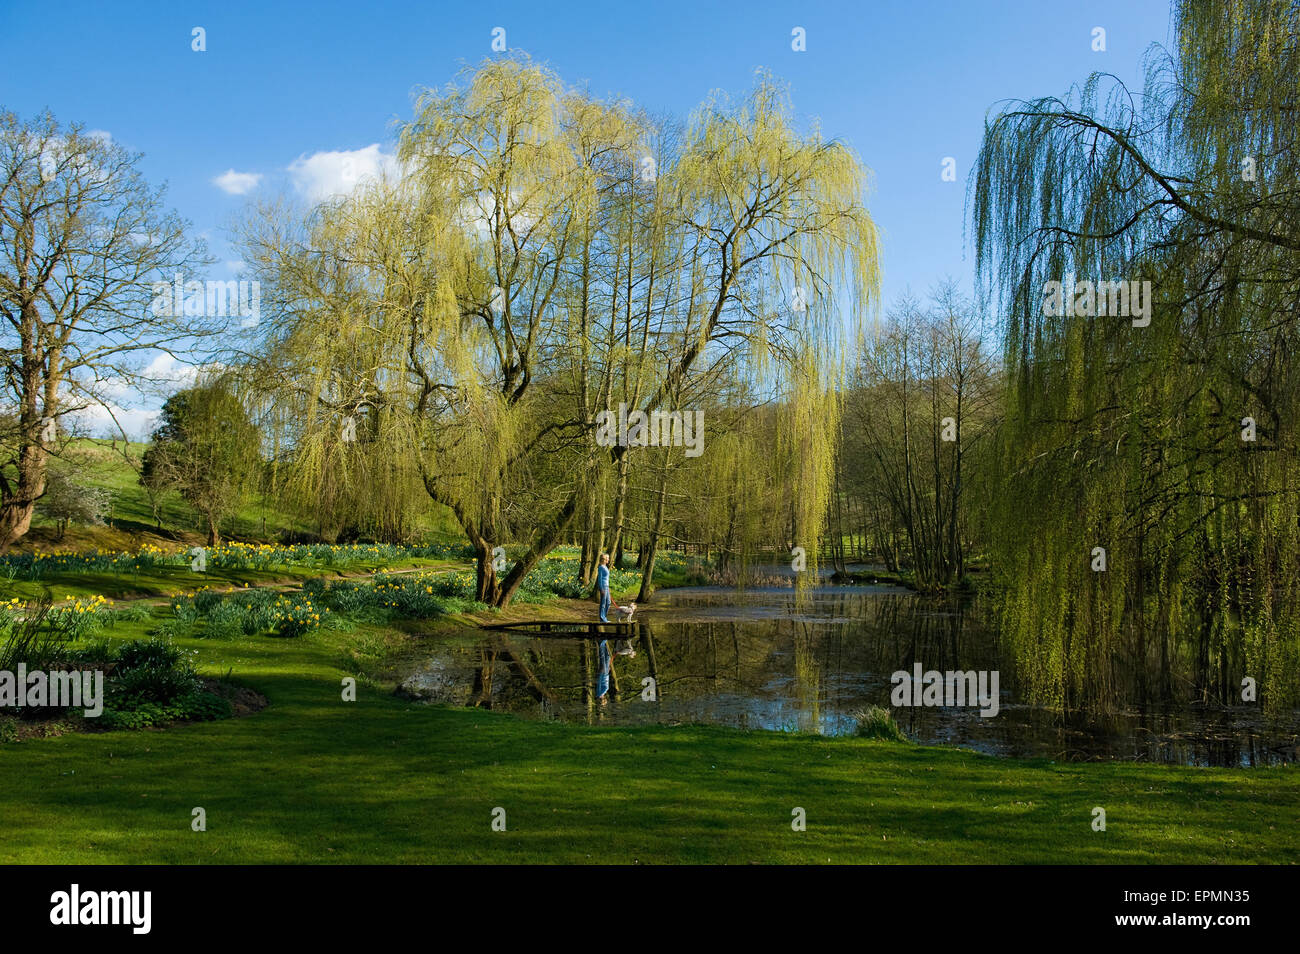 A woman and a dog standing on a jetty on a lake, with weeping willow fronds reaching down to the water. - Stock Image